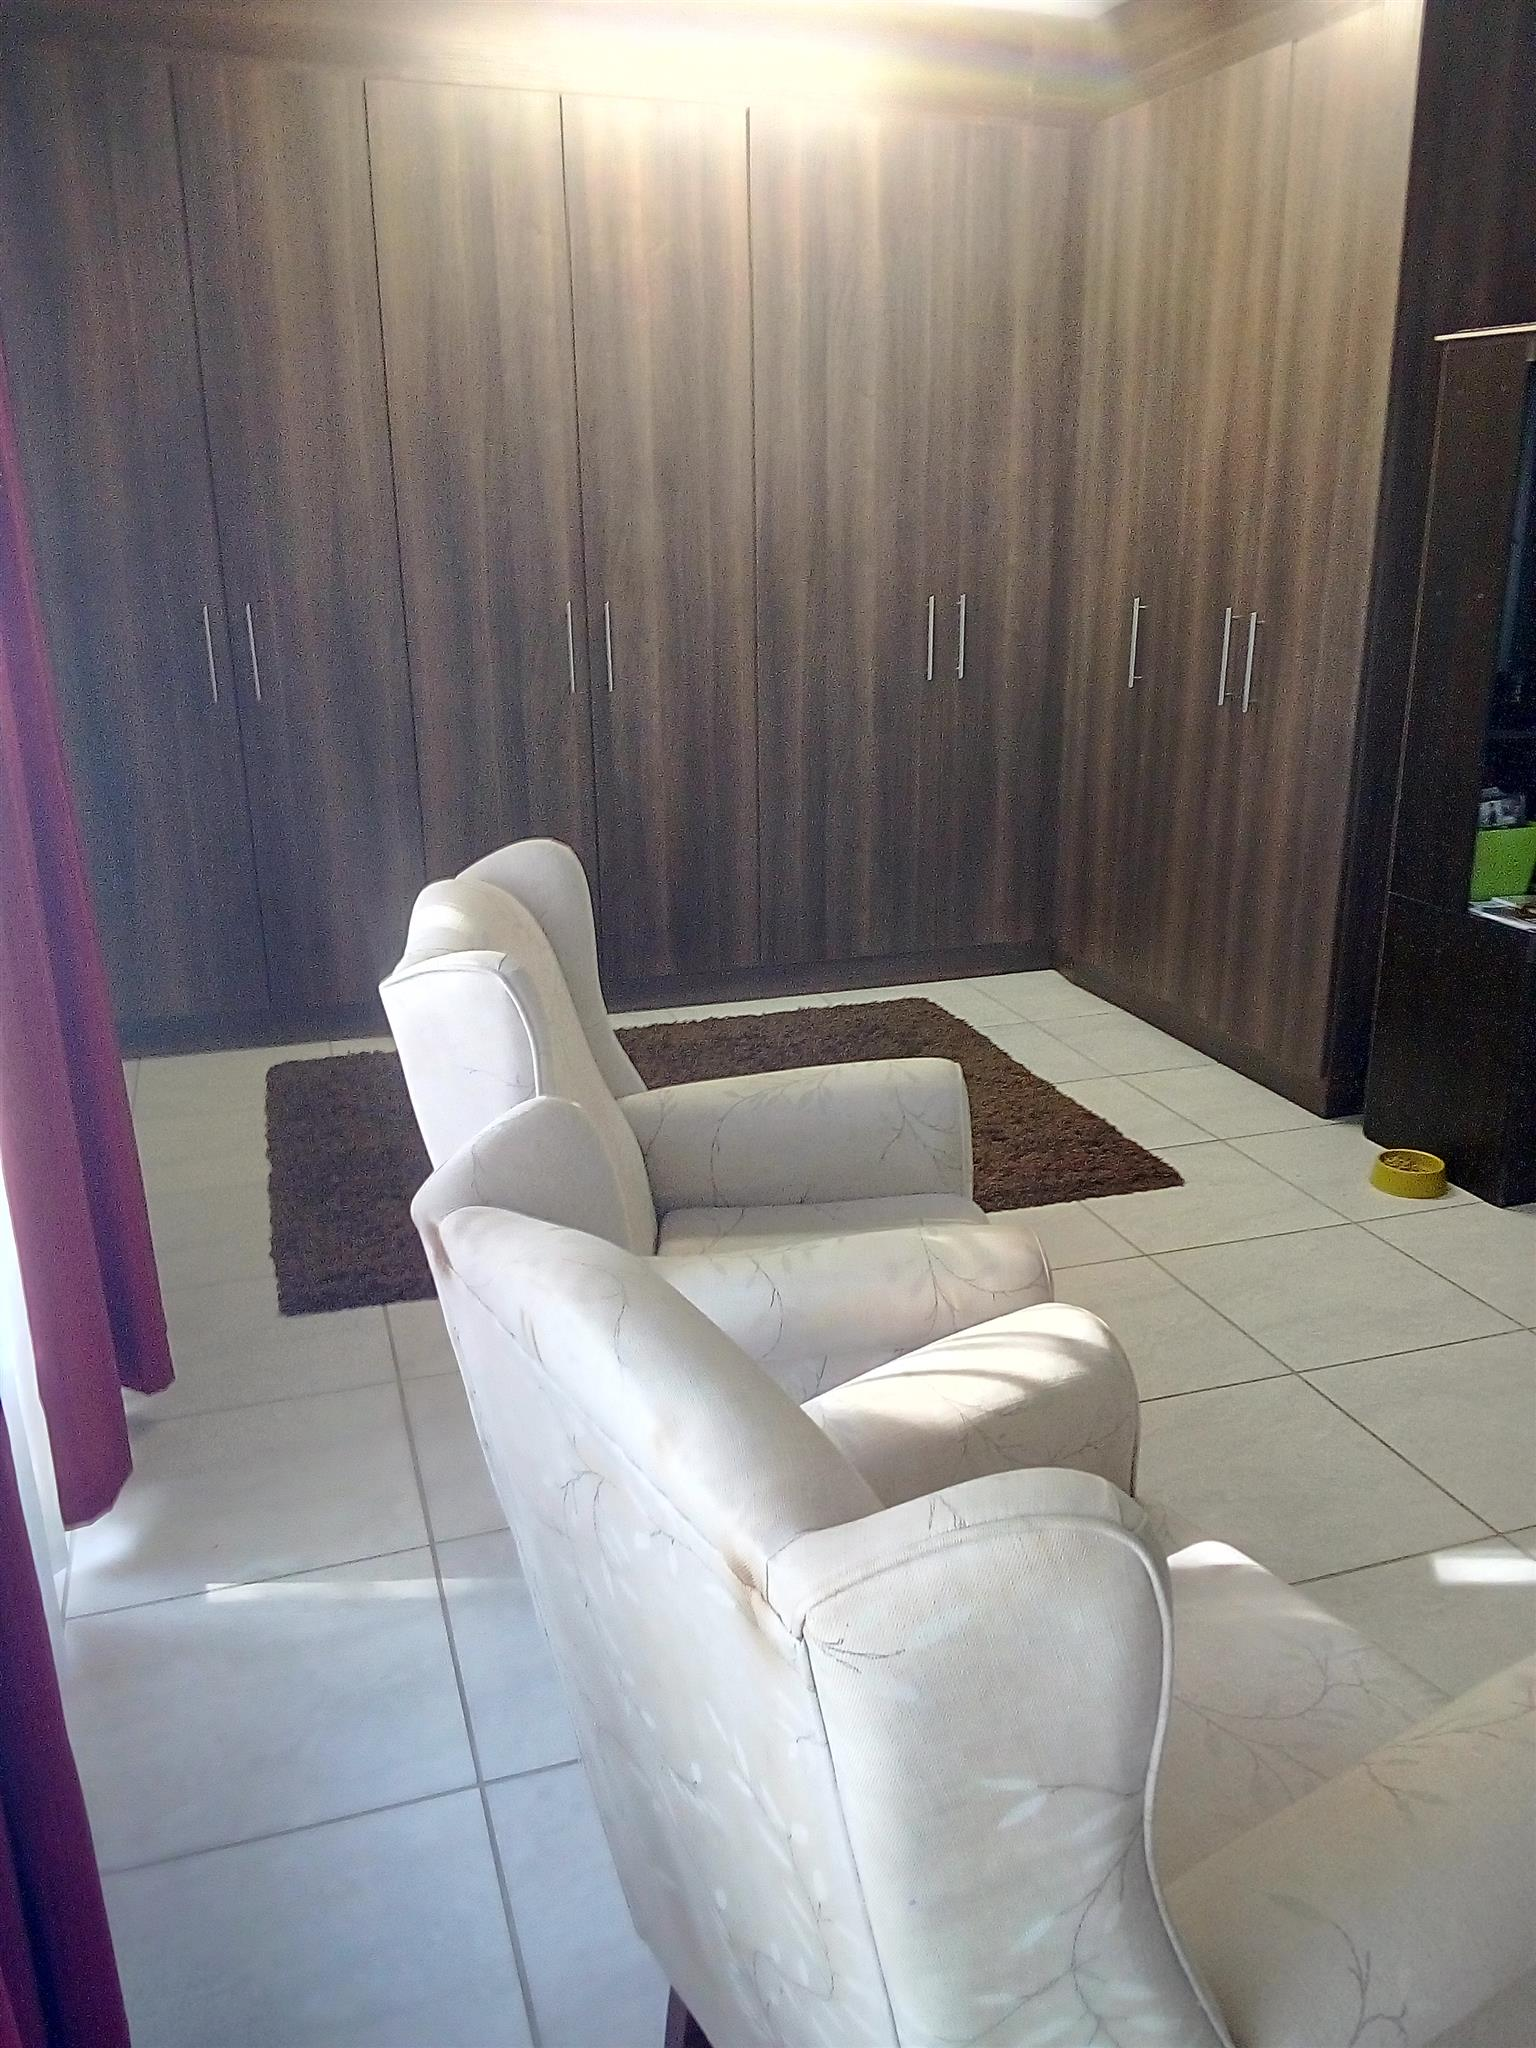 5 Bedroom house in Modimolle for sale